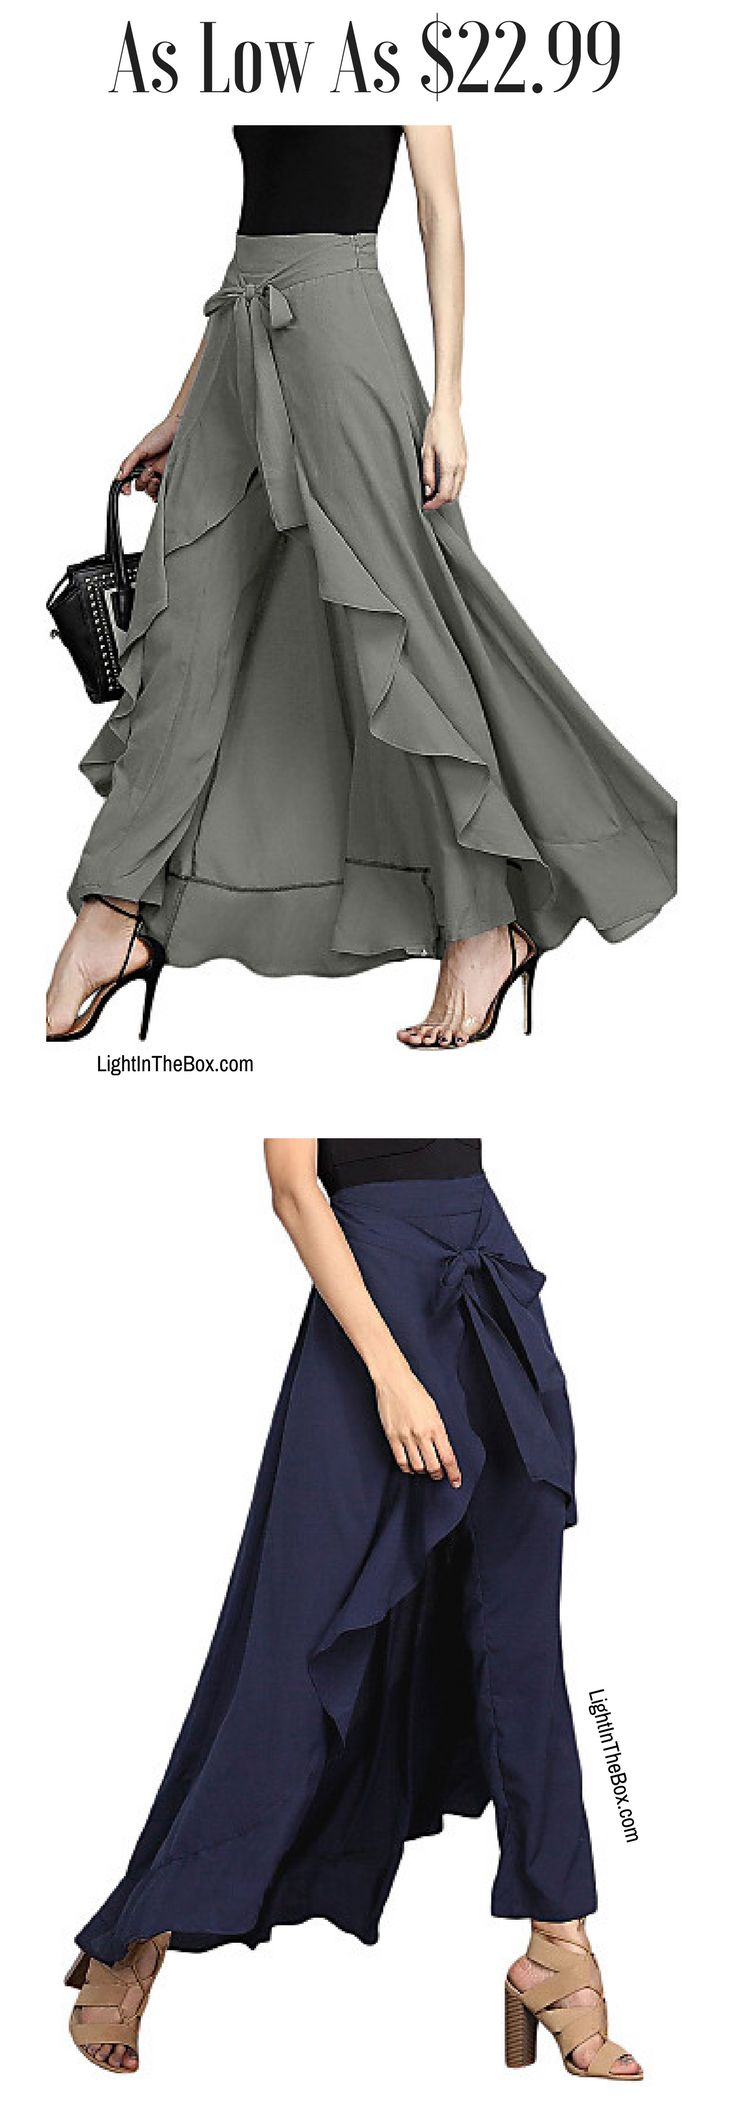 2 in 1 - ruffle pants + skirt. Unique creative look is guaranteed. Find it in grey, blue, wine red, black, brown colours at just $22.99